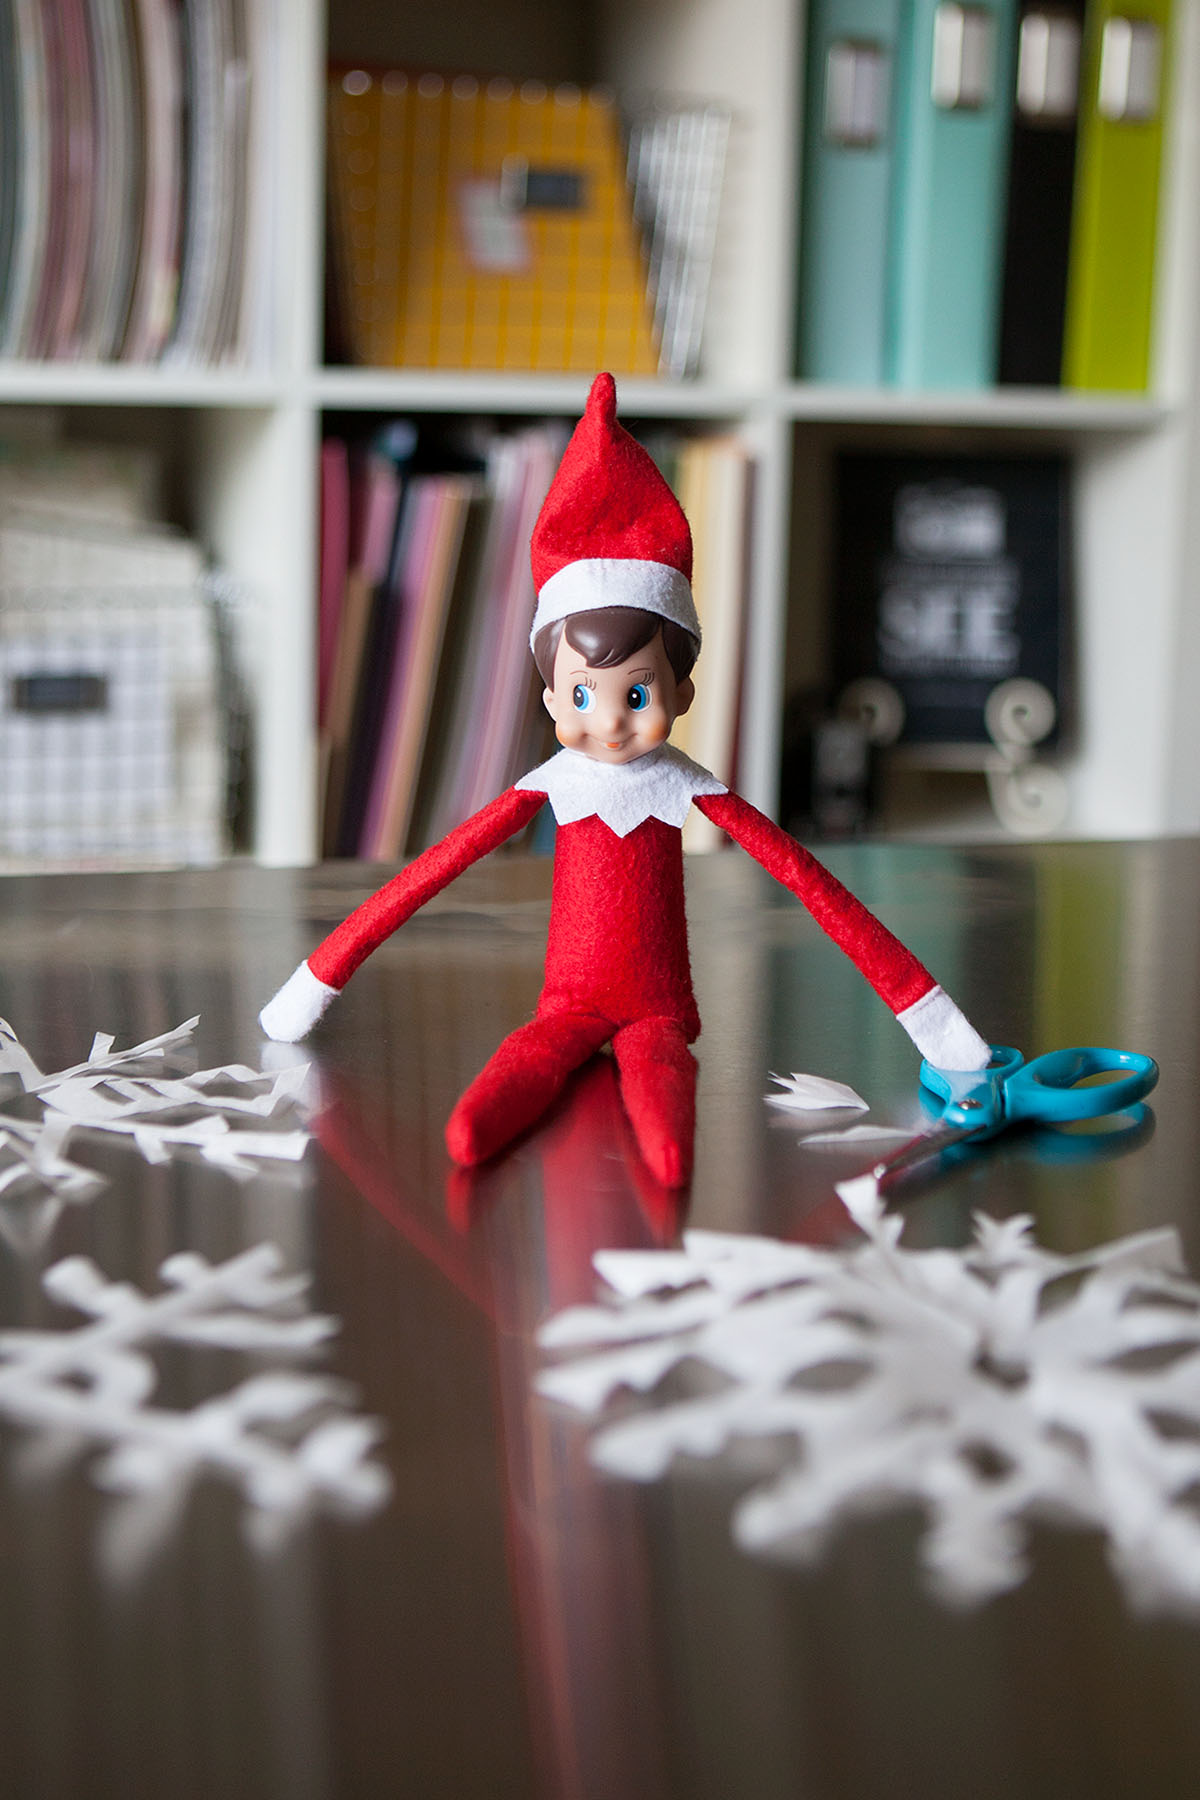 More than 40 Easy Elf on the Shelf